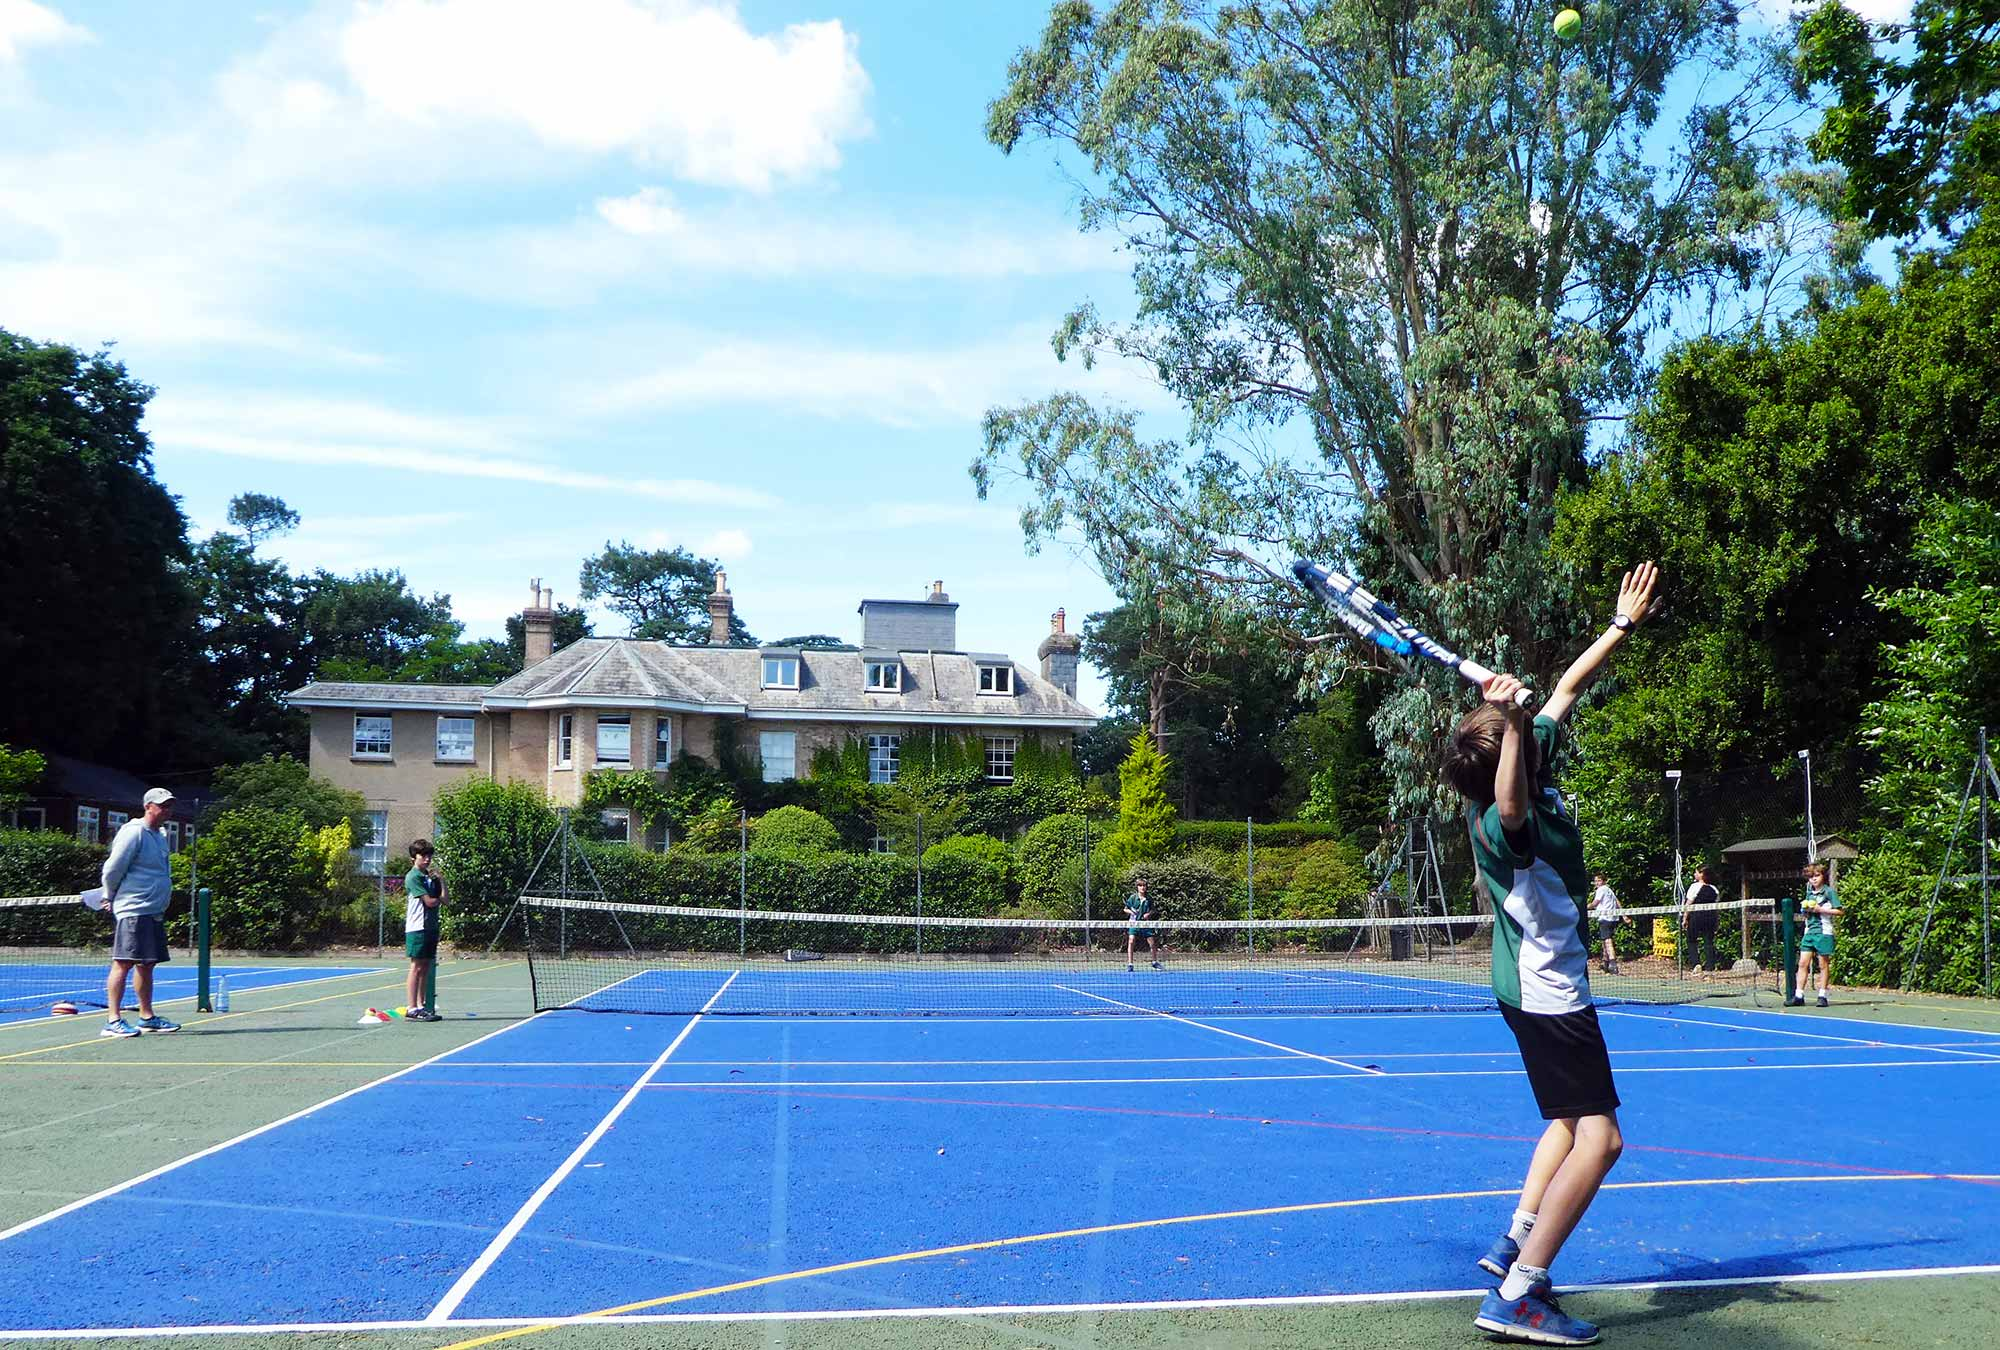 Tennis at Yarrells School